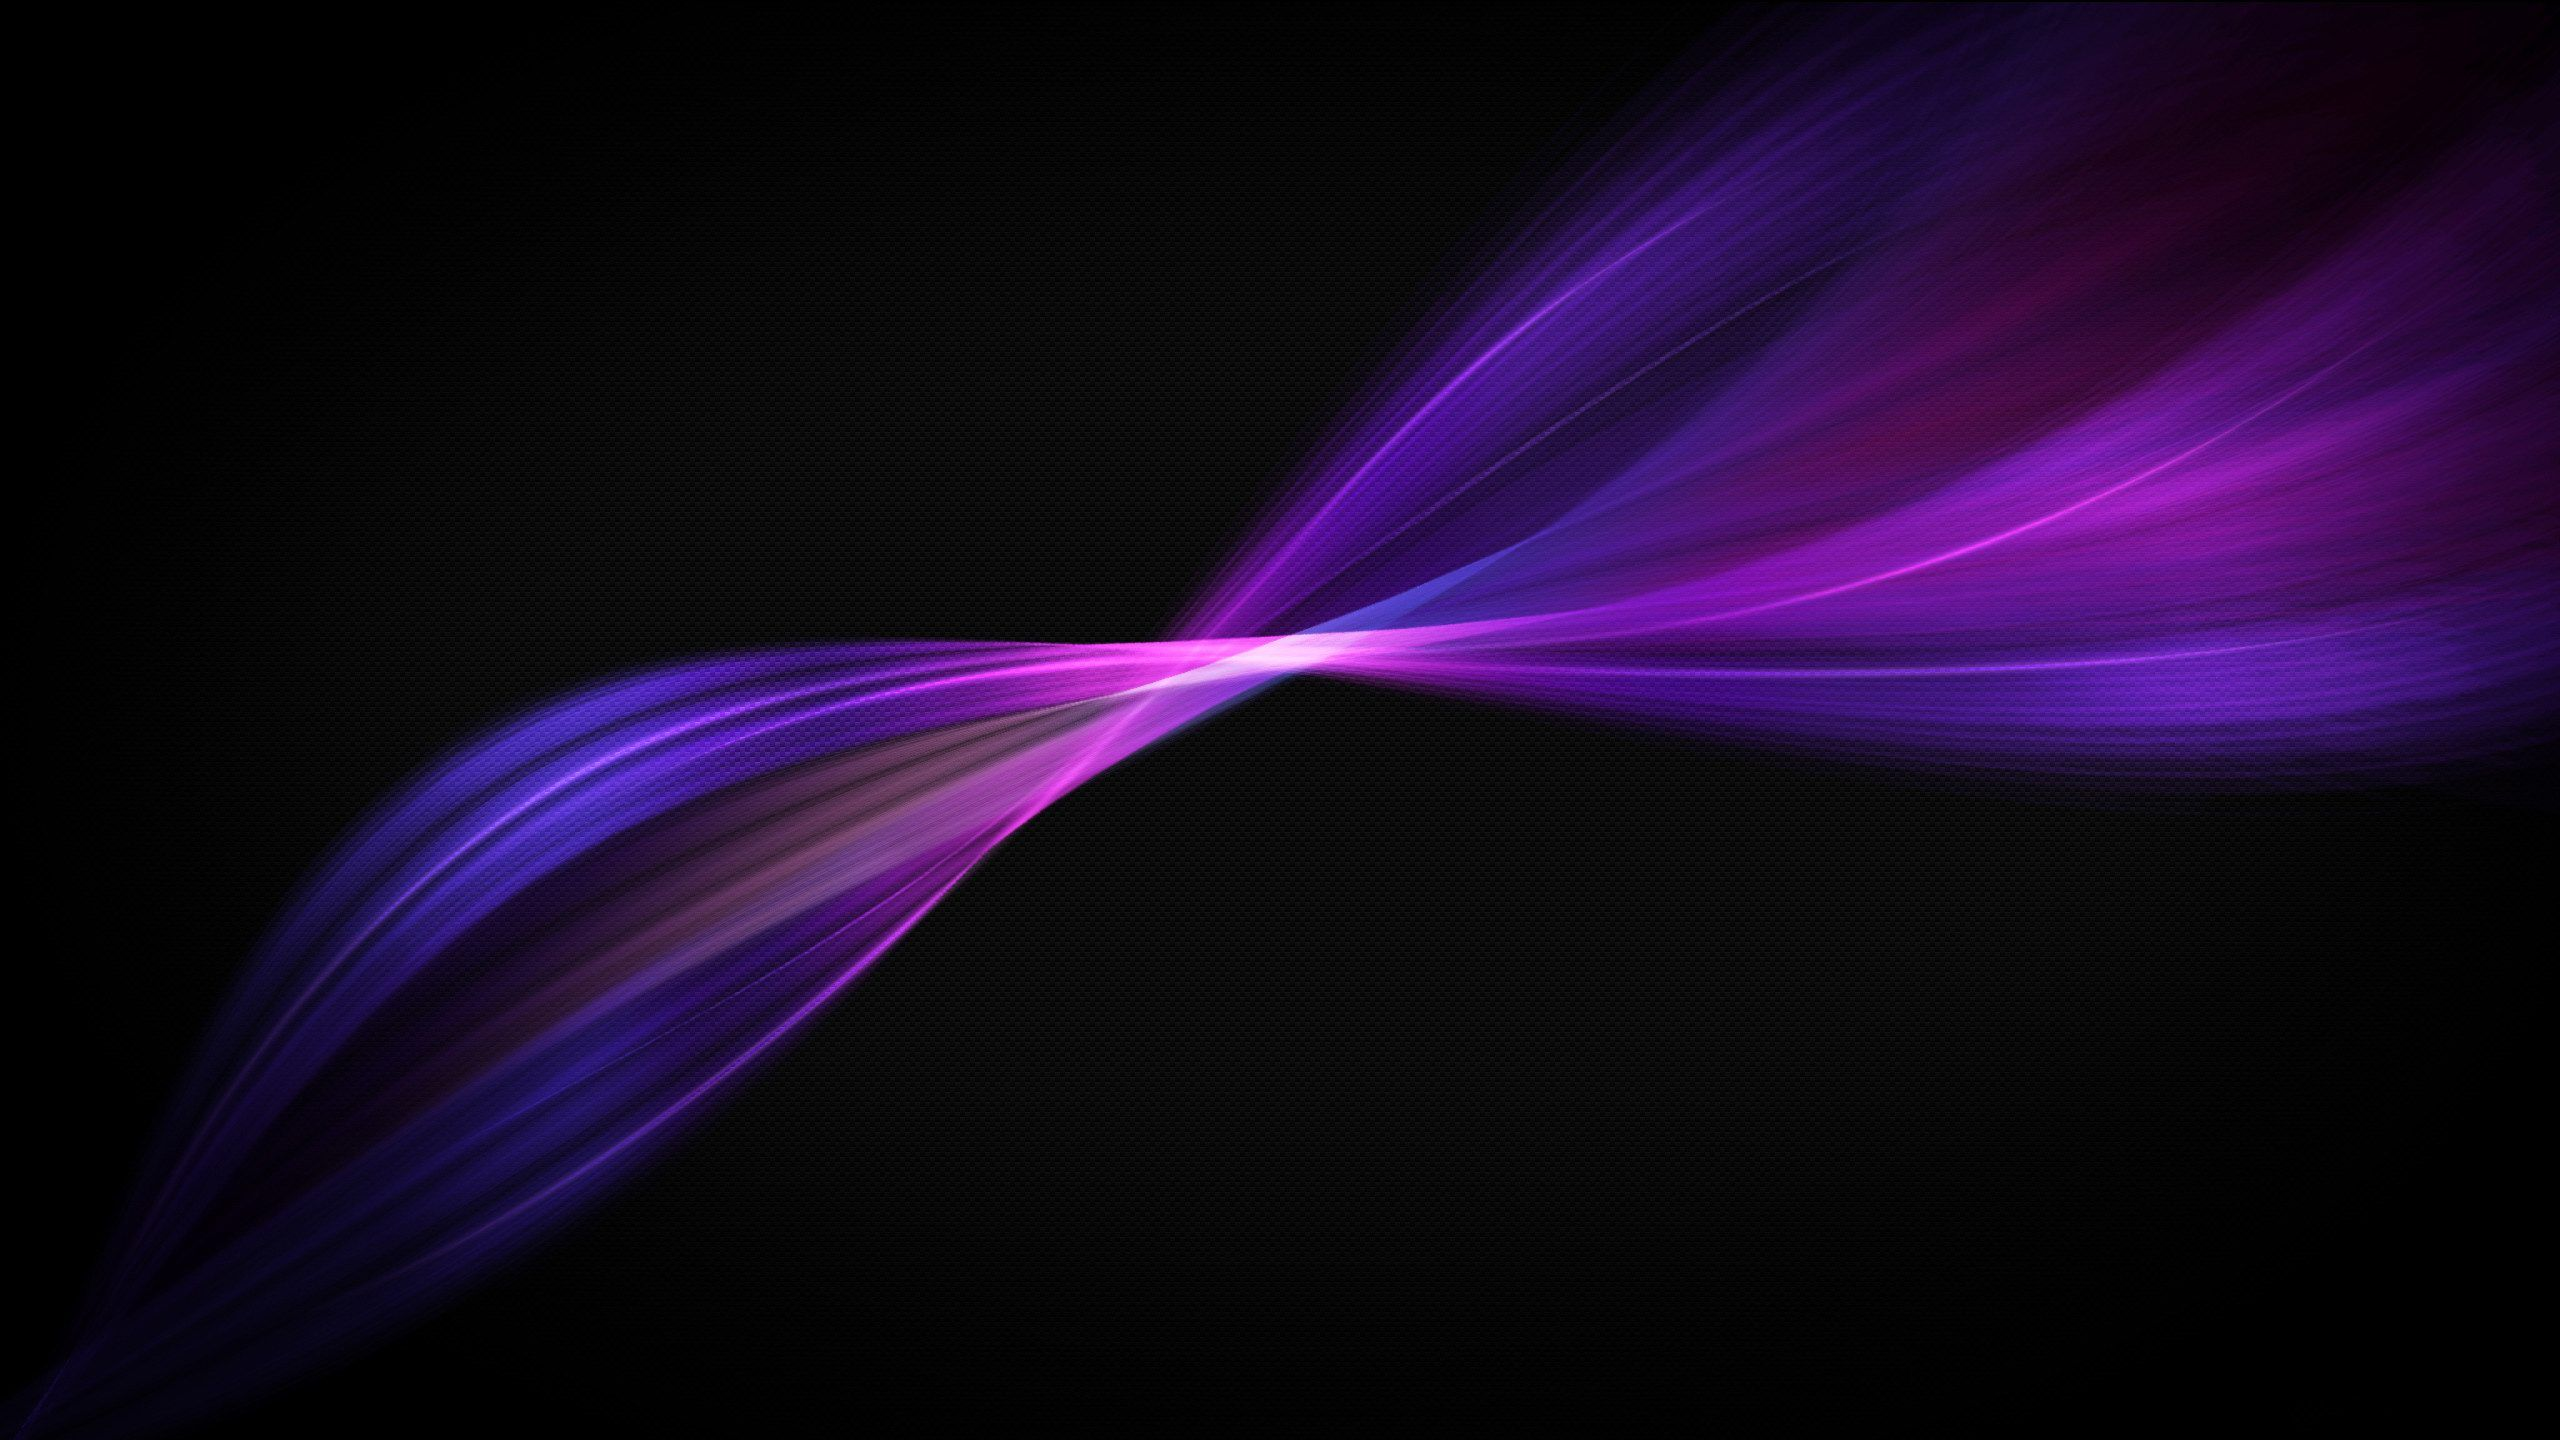 Color Black Wallpaper 27 Cool Hd Wallpaper And Full Hd Wallpapers High Black Colour Background Black And Purple Wallpaper Black And Purple Background